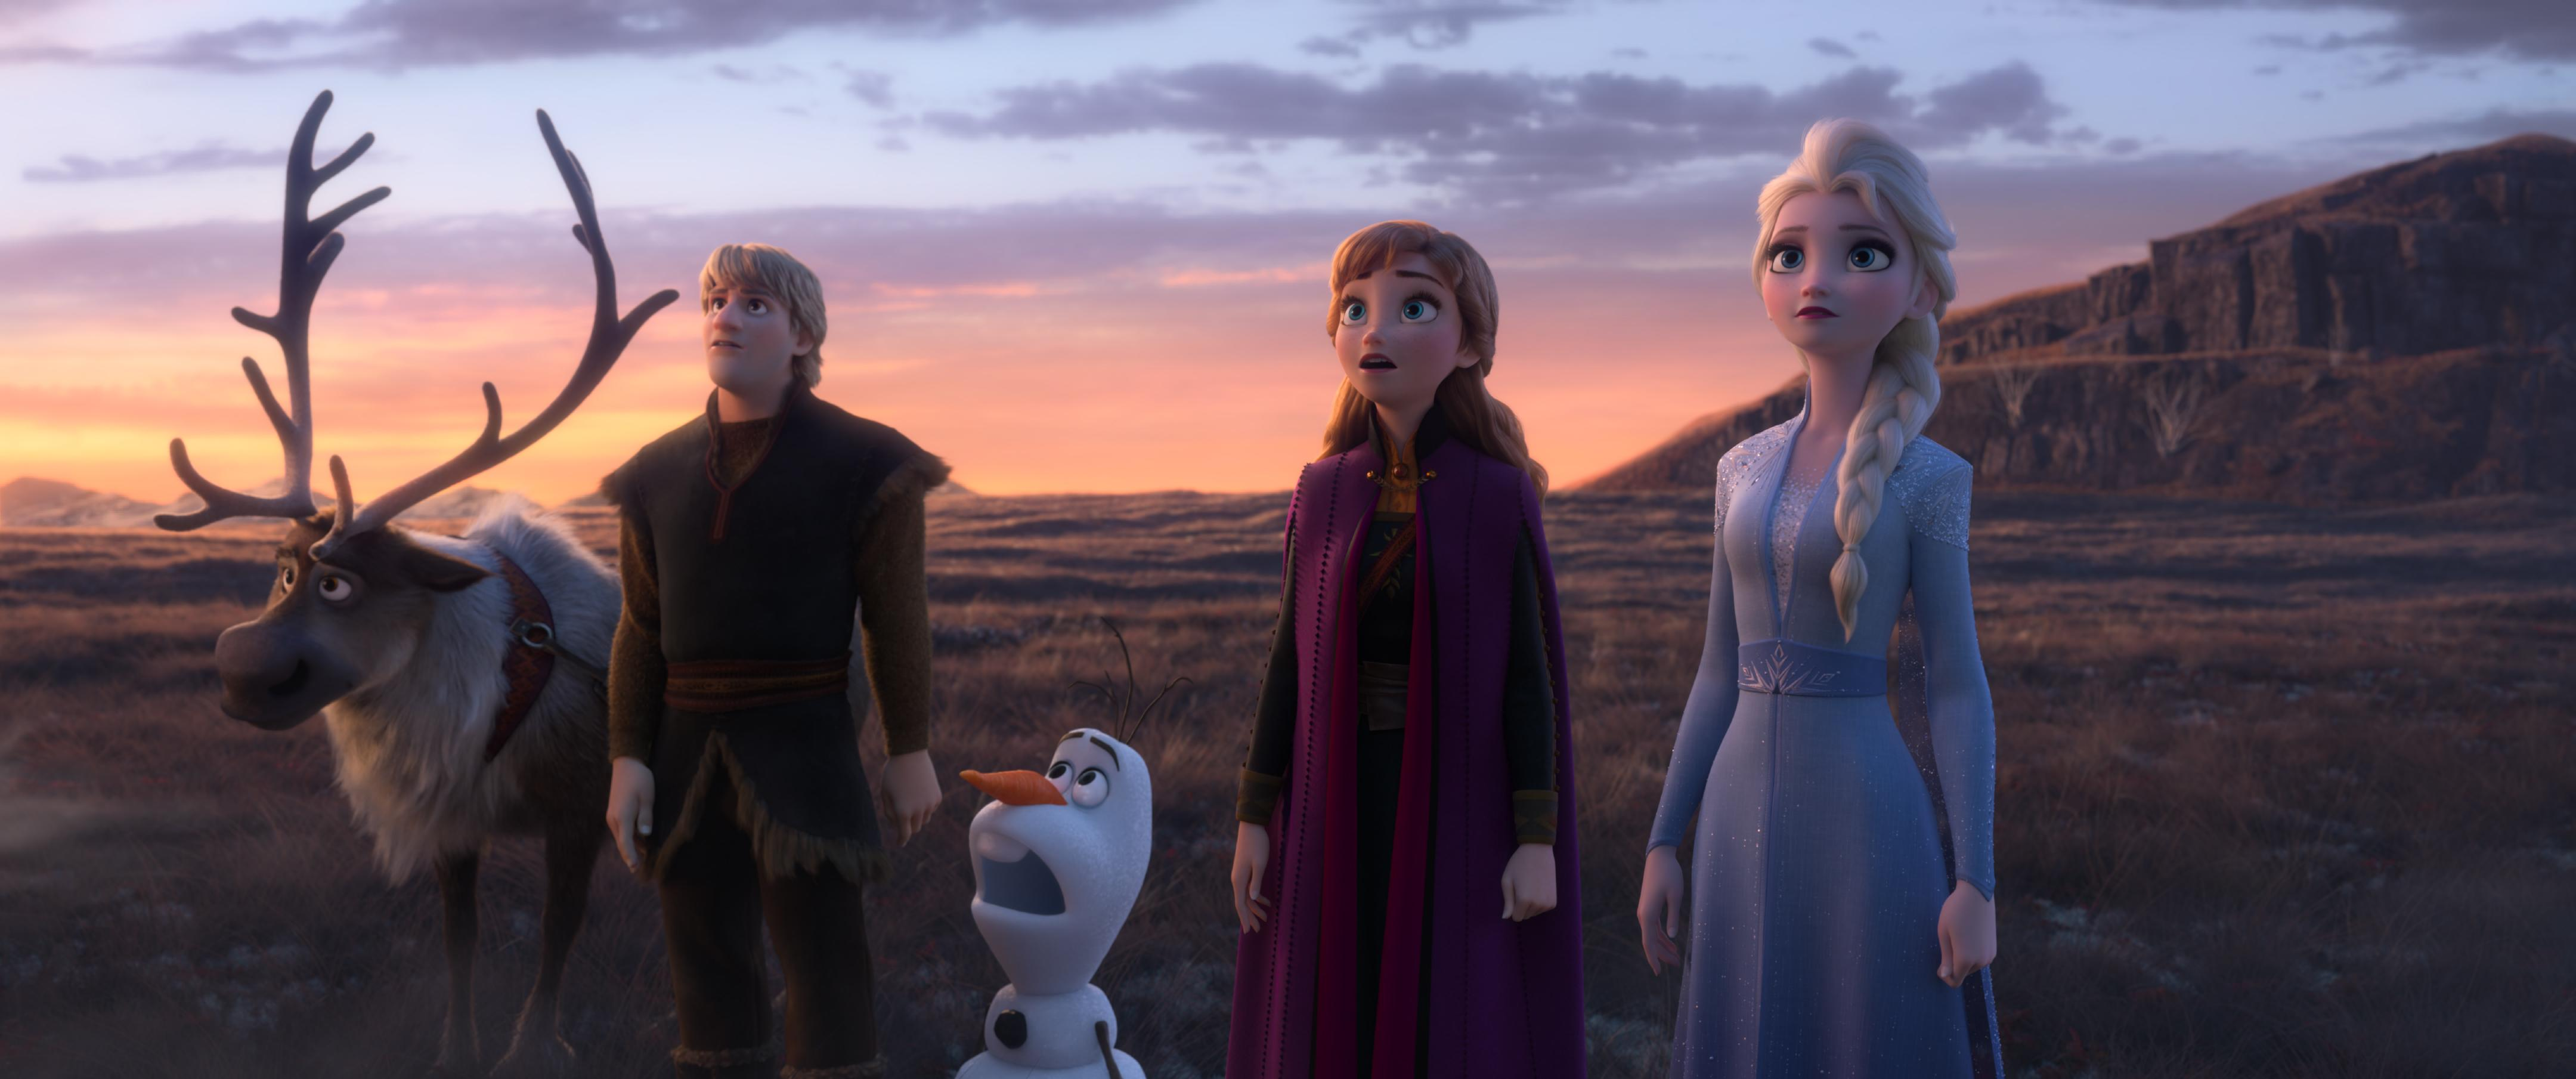 "FROZEN 2 - In Walt Disney Animation Studios' ""Frozen 2, Elsa, Anna, Kristoff, Olaf and Sven journey far beyond the gates of Arendelle in search of answers. Featuring the voices of Idina Menzel, Kristen Bell, Jonathan Groff and Josh Gad, ""Frozen 2"" opens in U.S. theaters November 22. © 2019 Disney. All Rights Reserved."